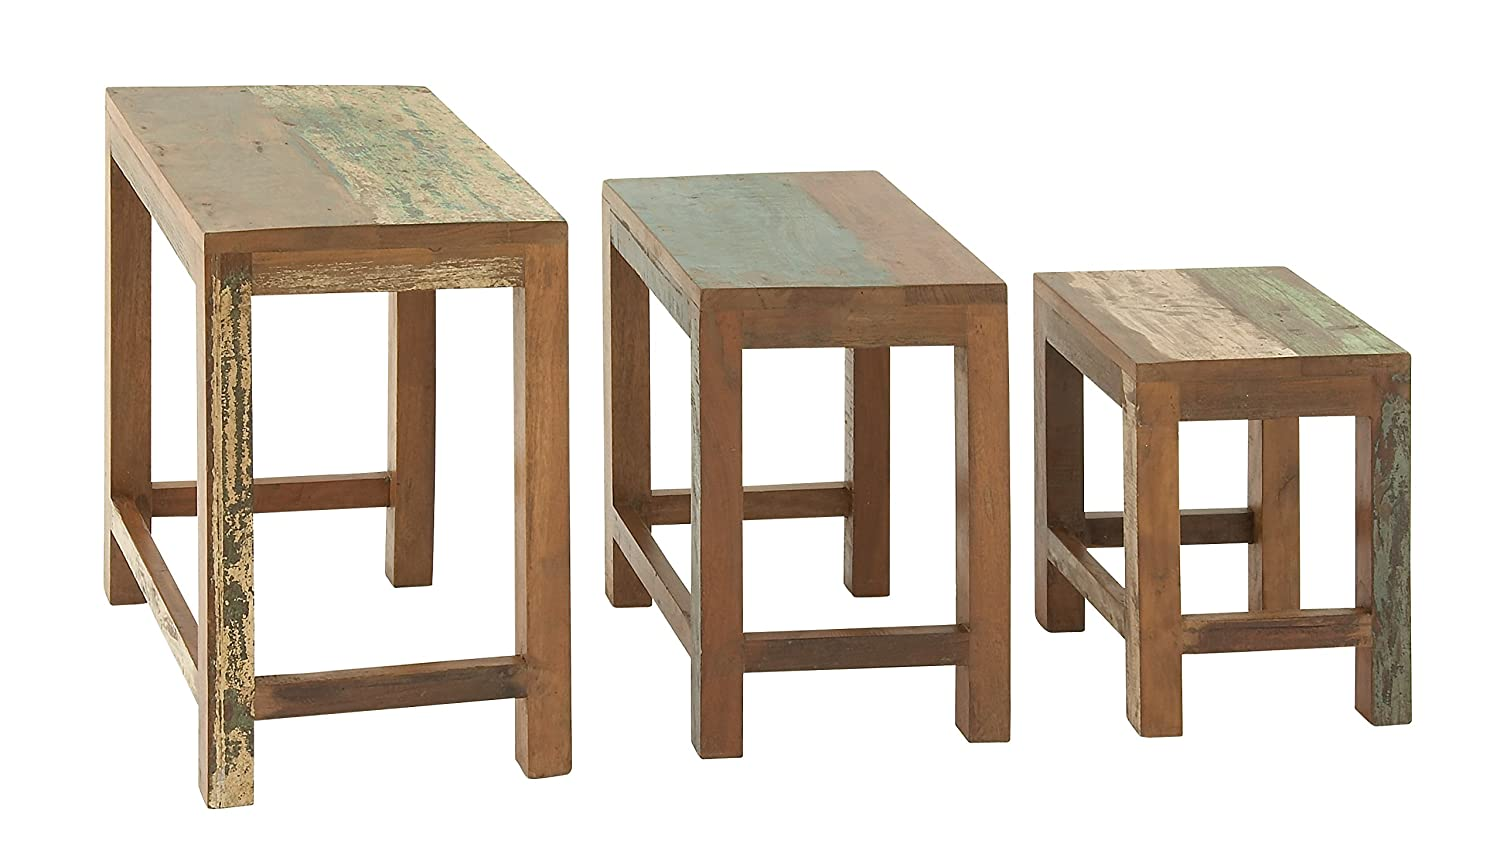 Deco 79 23523 Wood Nesting Table (Set of 3), 20